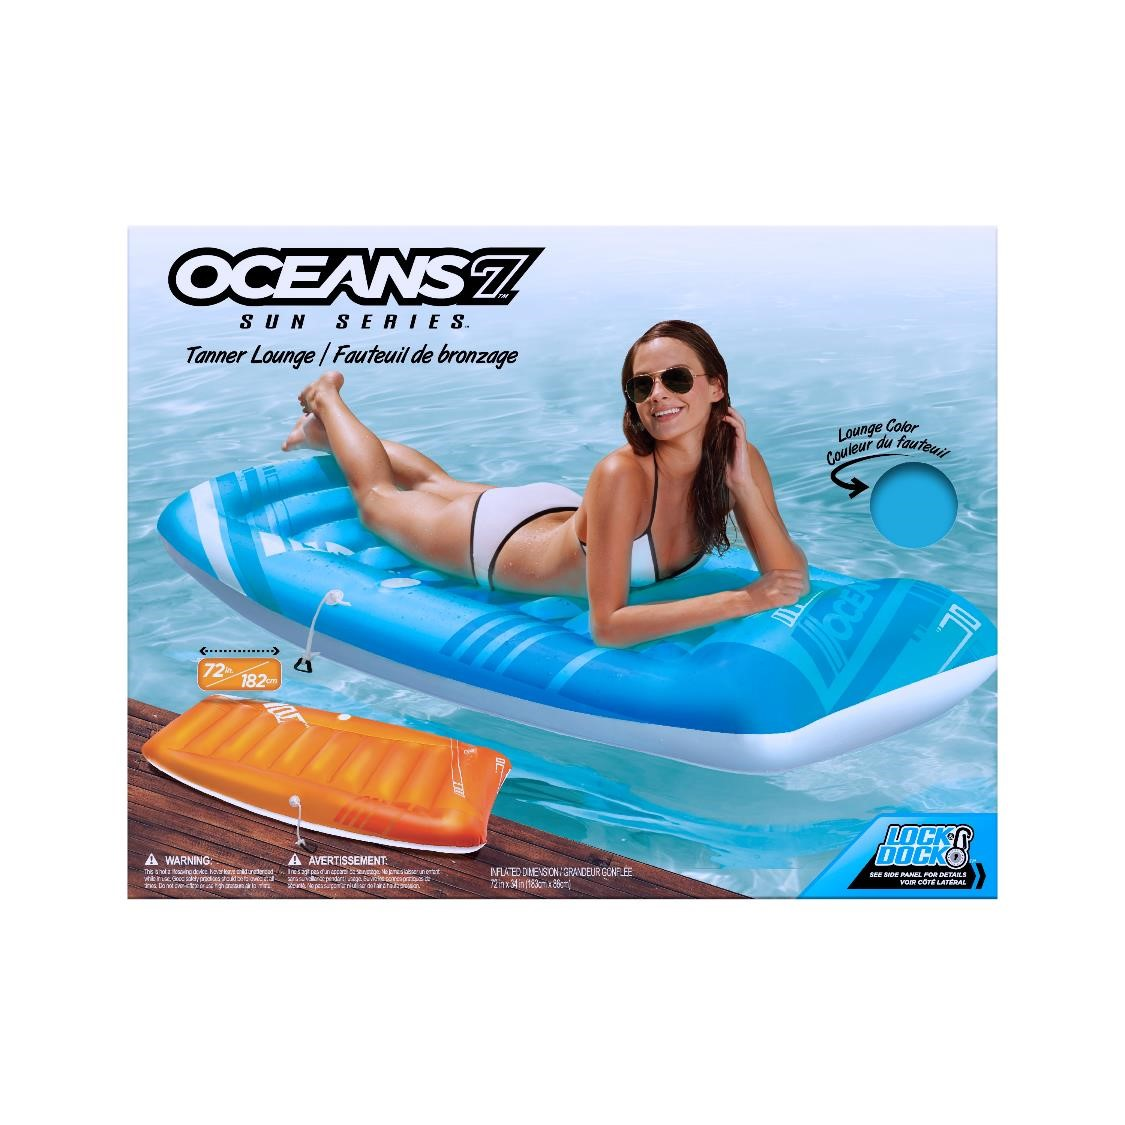 Oceans 7 Dual Lounger and Cooler